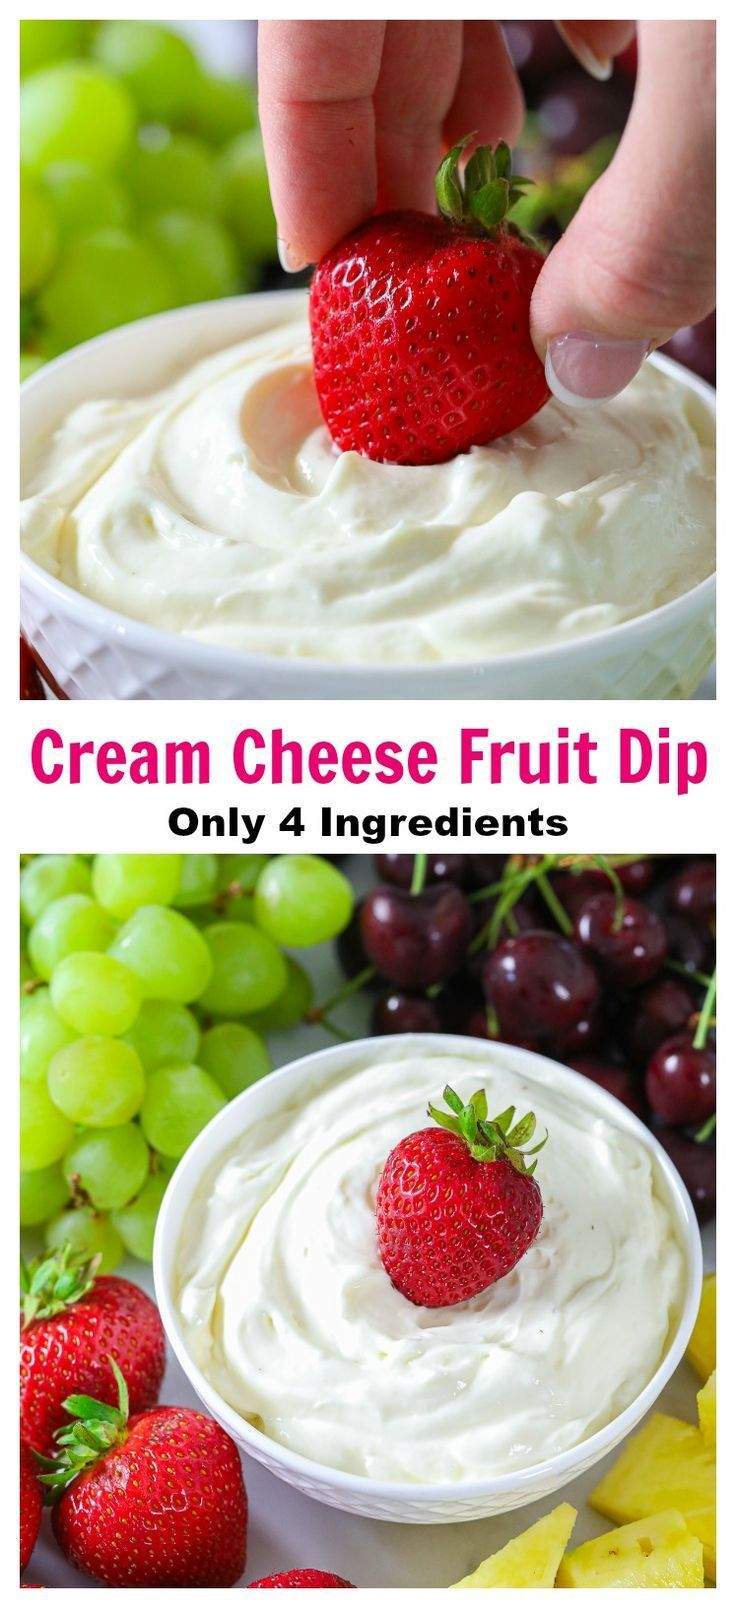 Cream Cheese Fruit Dip Recipe In 2020 Fruit Dips Recipes Cream Cheese Fruit Dip Recipe Cream Cheese Fruit Dip